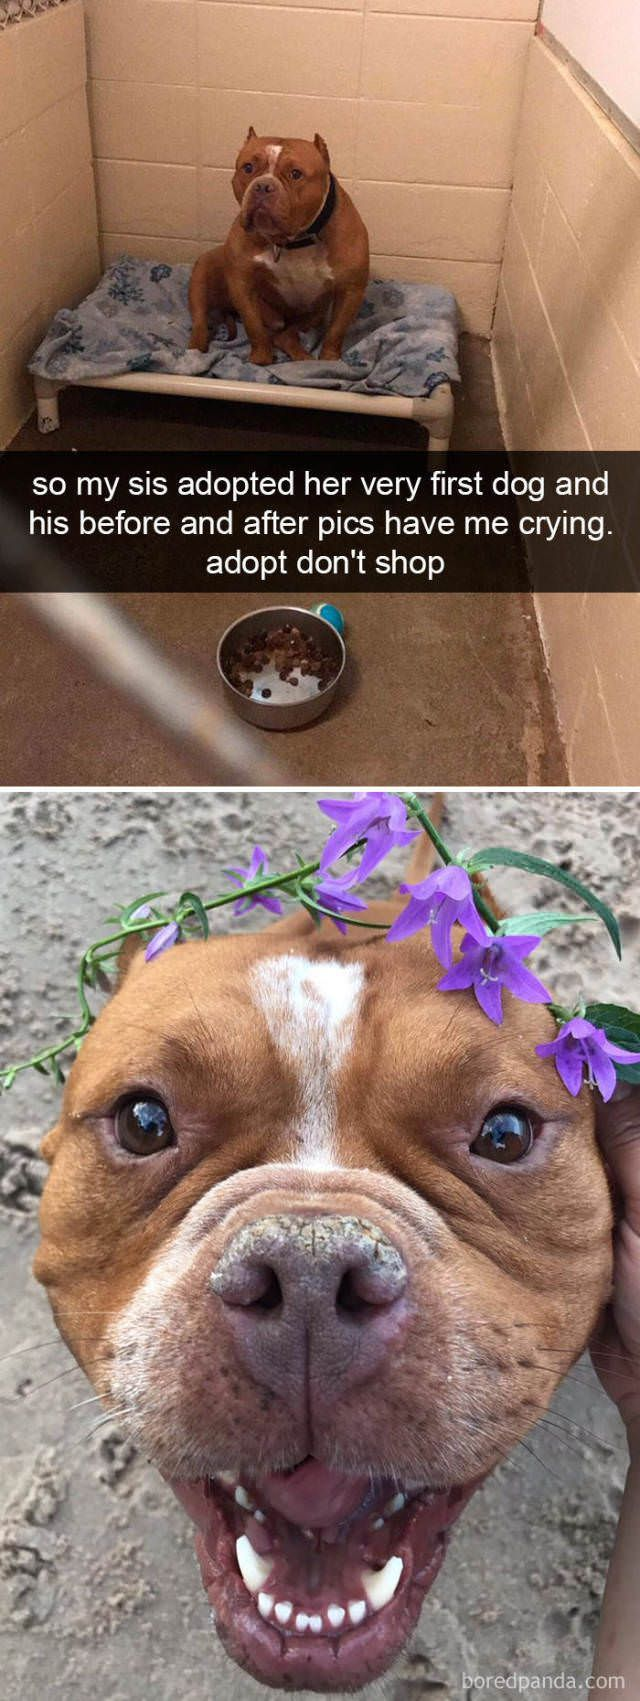 42 Funny Dog Memes Which Will Make You Fall In Love With Them With Images Cute Baby Animals Cute Dogs Dog Memes Clean